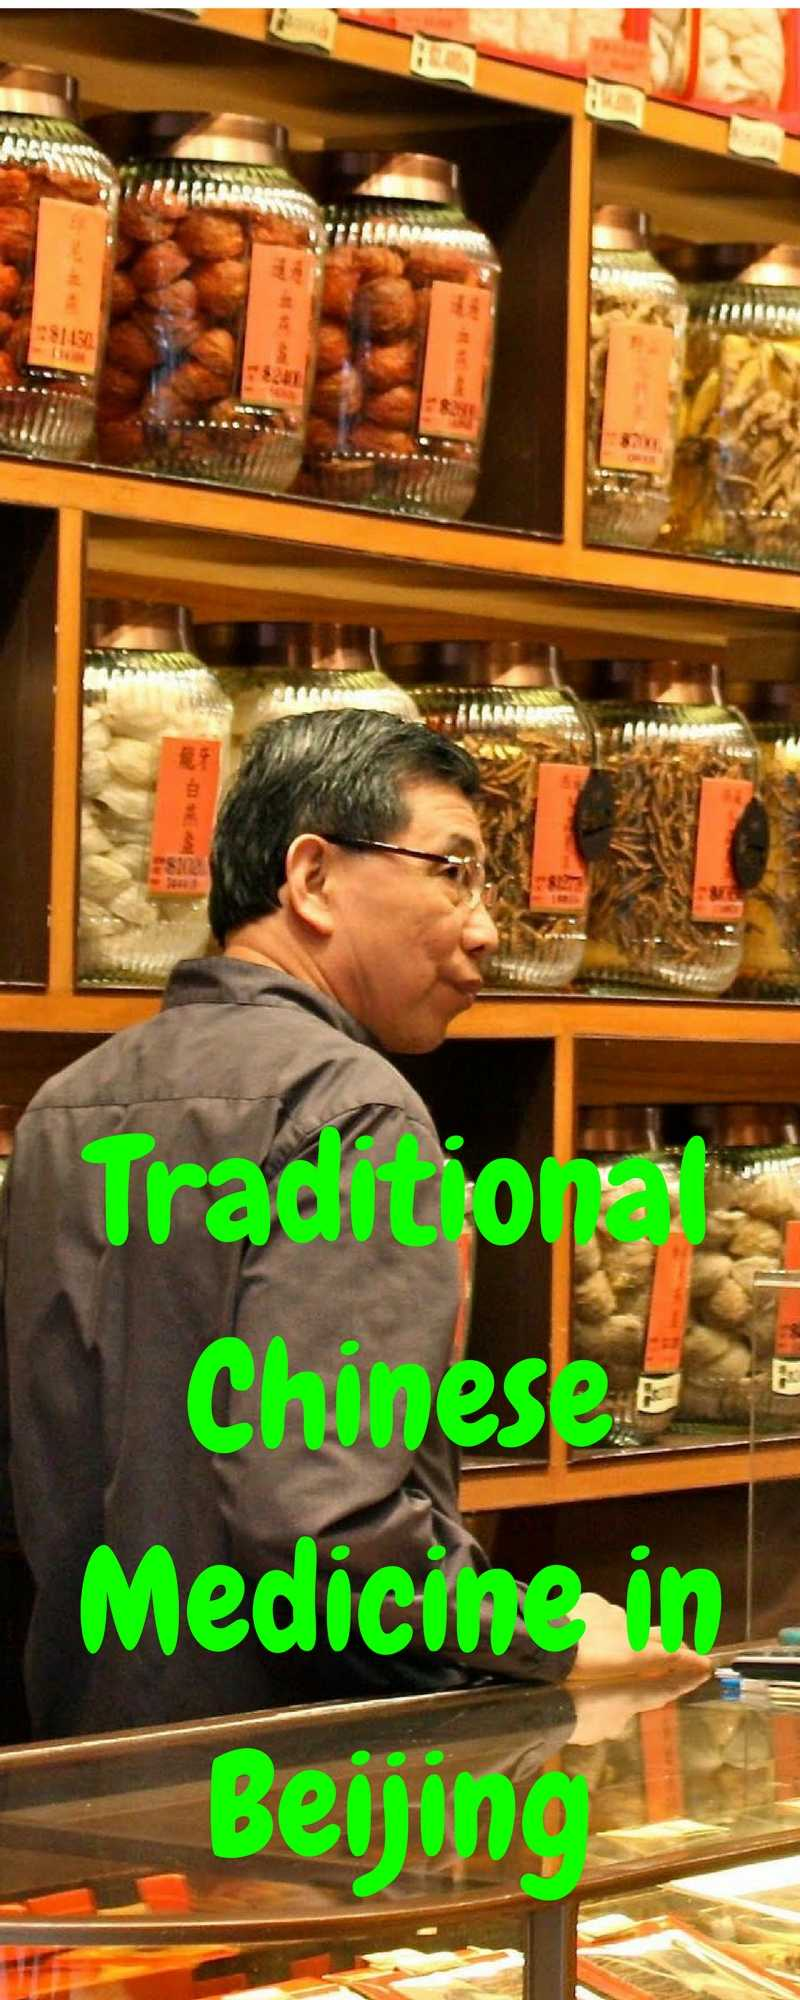 Traditional Chinese Medicine in Beijing | Beijing | China | Asia | Asian Recipes | Asian Salads | Asian Chicken Recipes | Asian Makeup | Asian Noodles | Travel | A Road to Travel.com